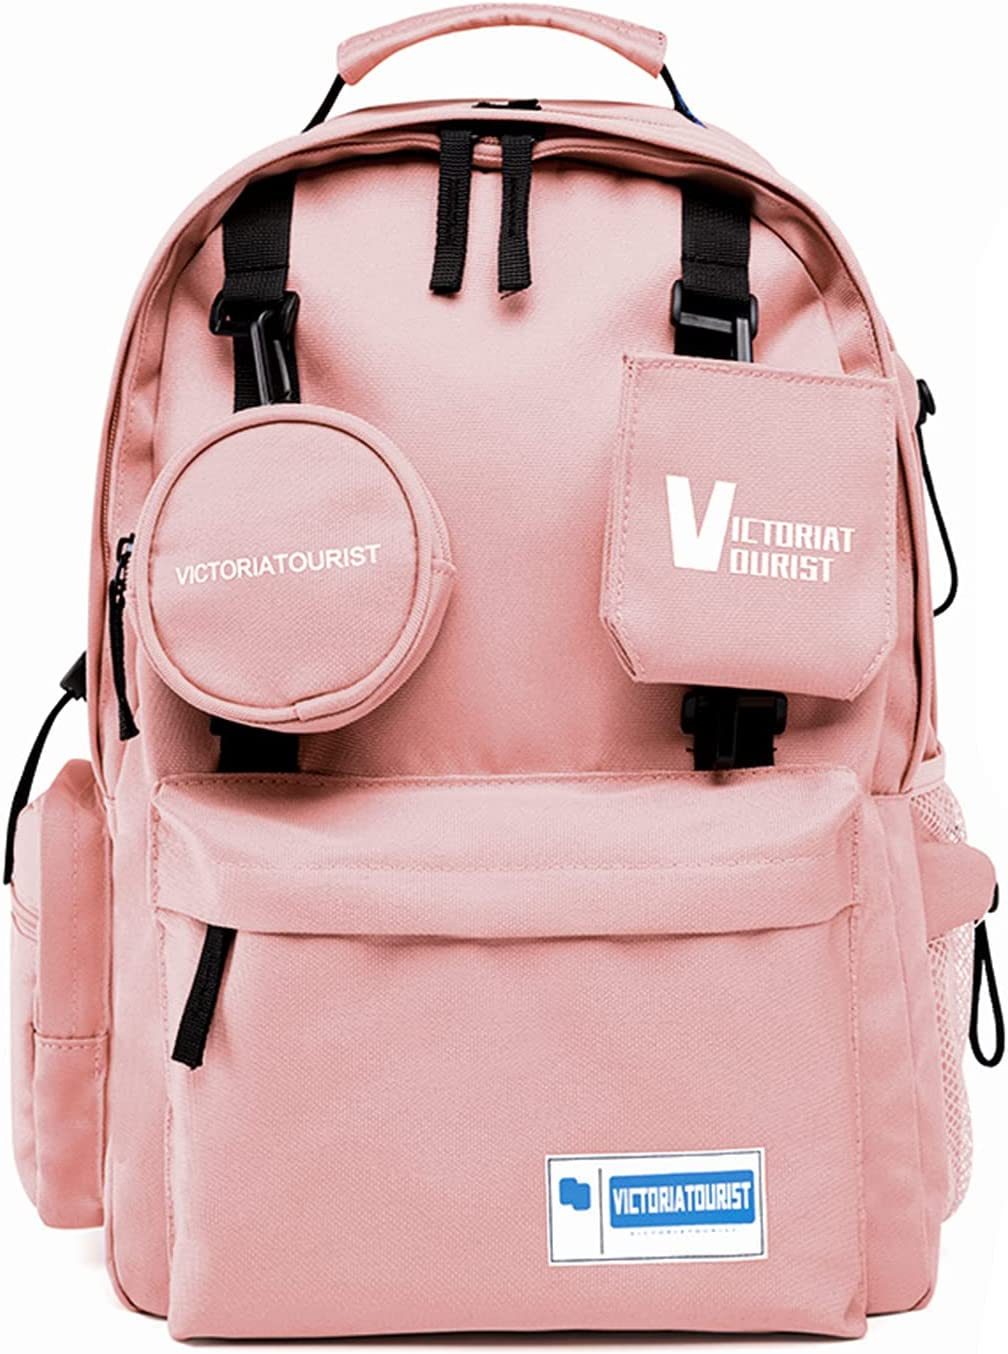 Backpack for Women Men, 14-15 Inch Water Resistant Travel Laptop Backpacks Computer Stylish Bag College School Student Gift, Bookbag Casual Hiking Daypack, Pink